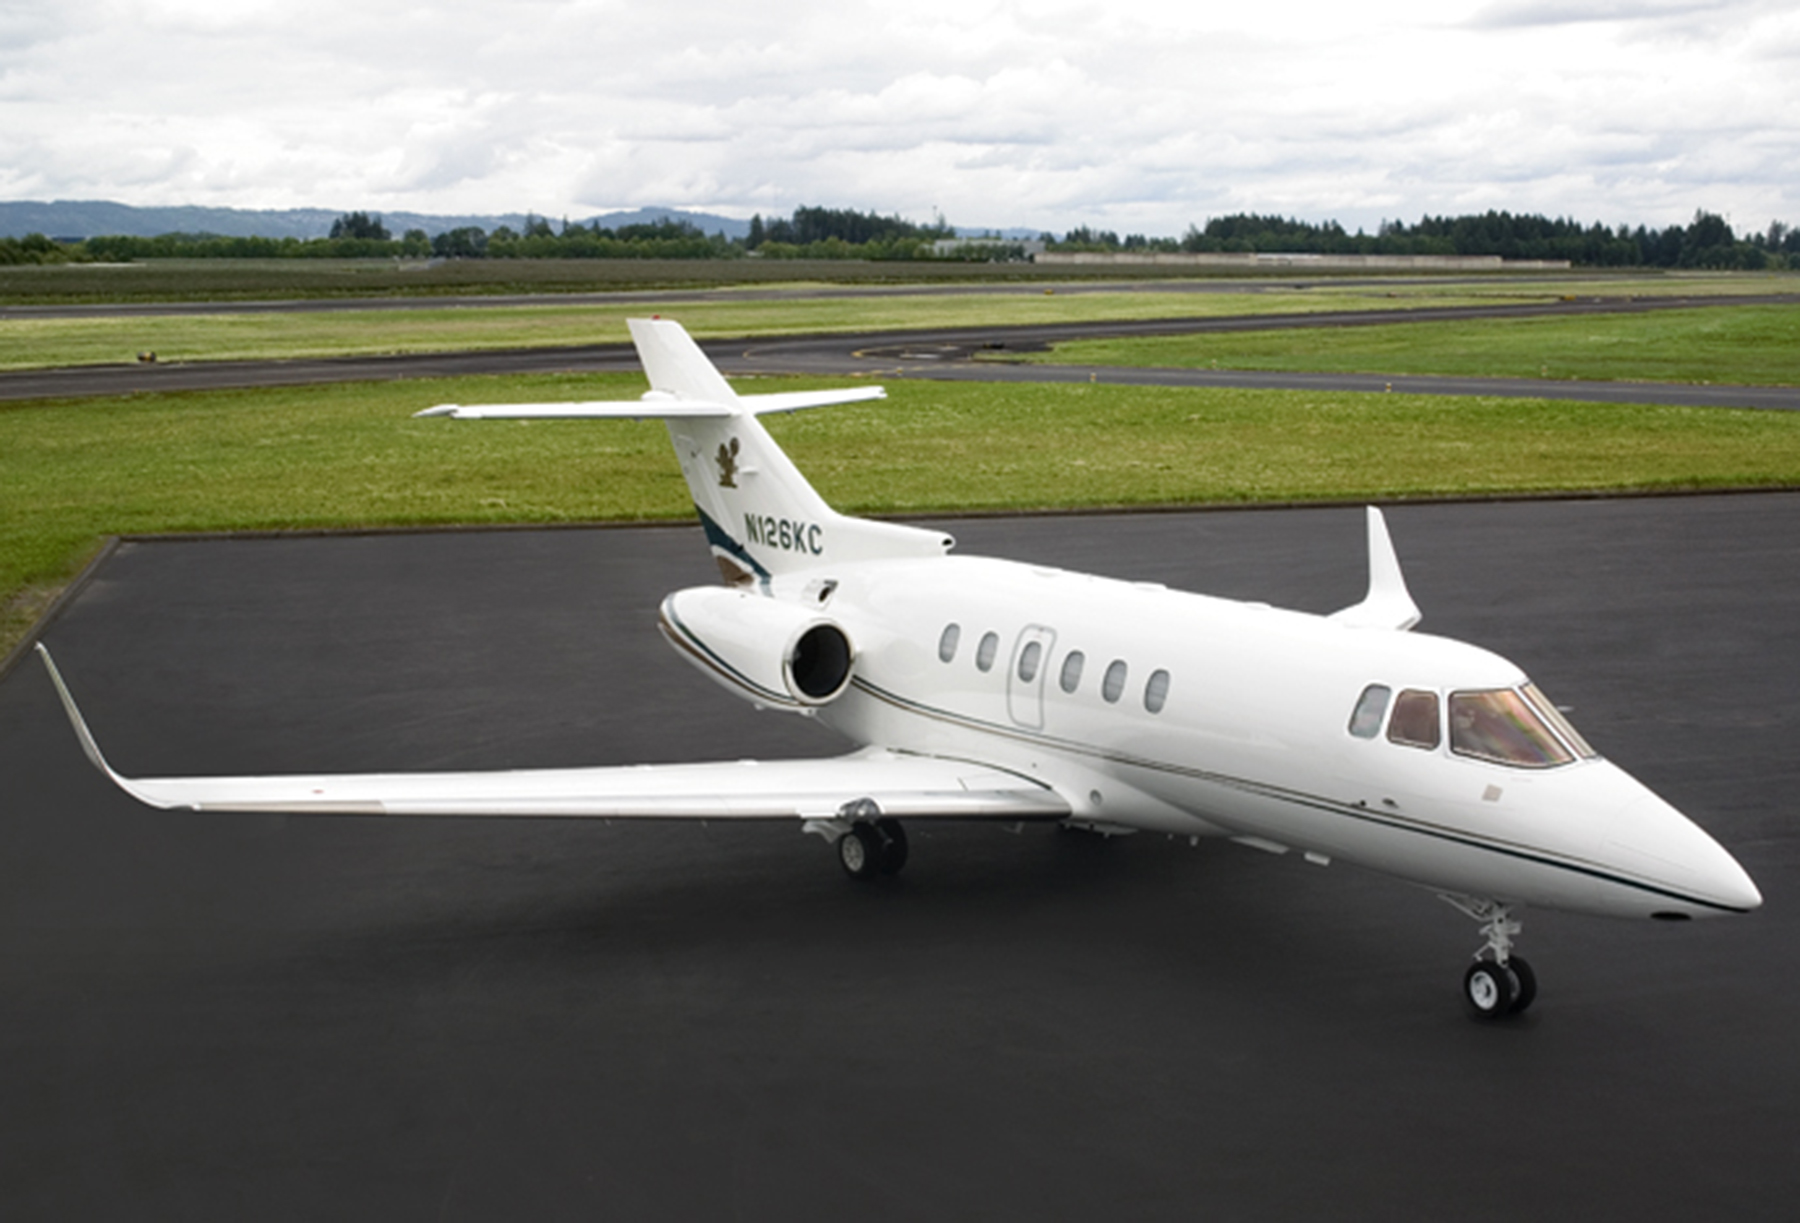 Hawker 800 SP at Global Aviation